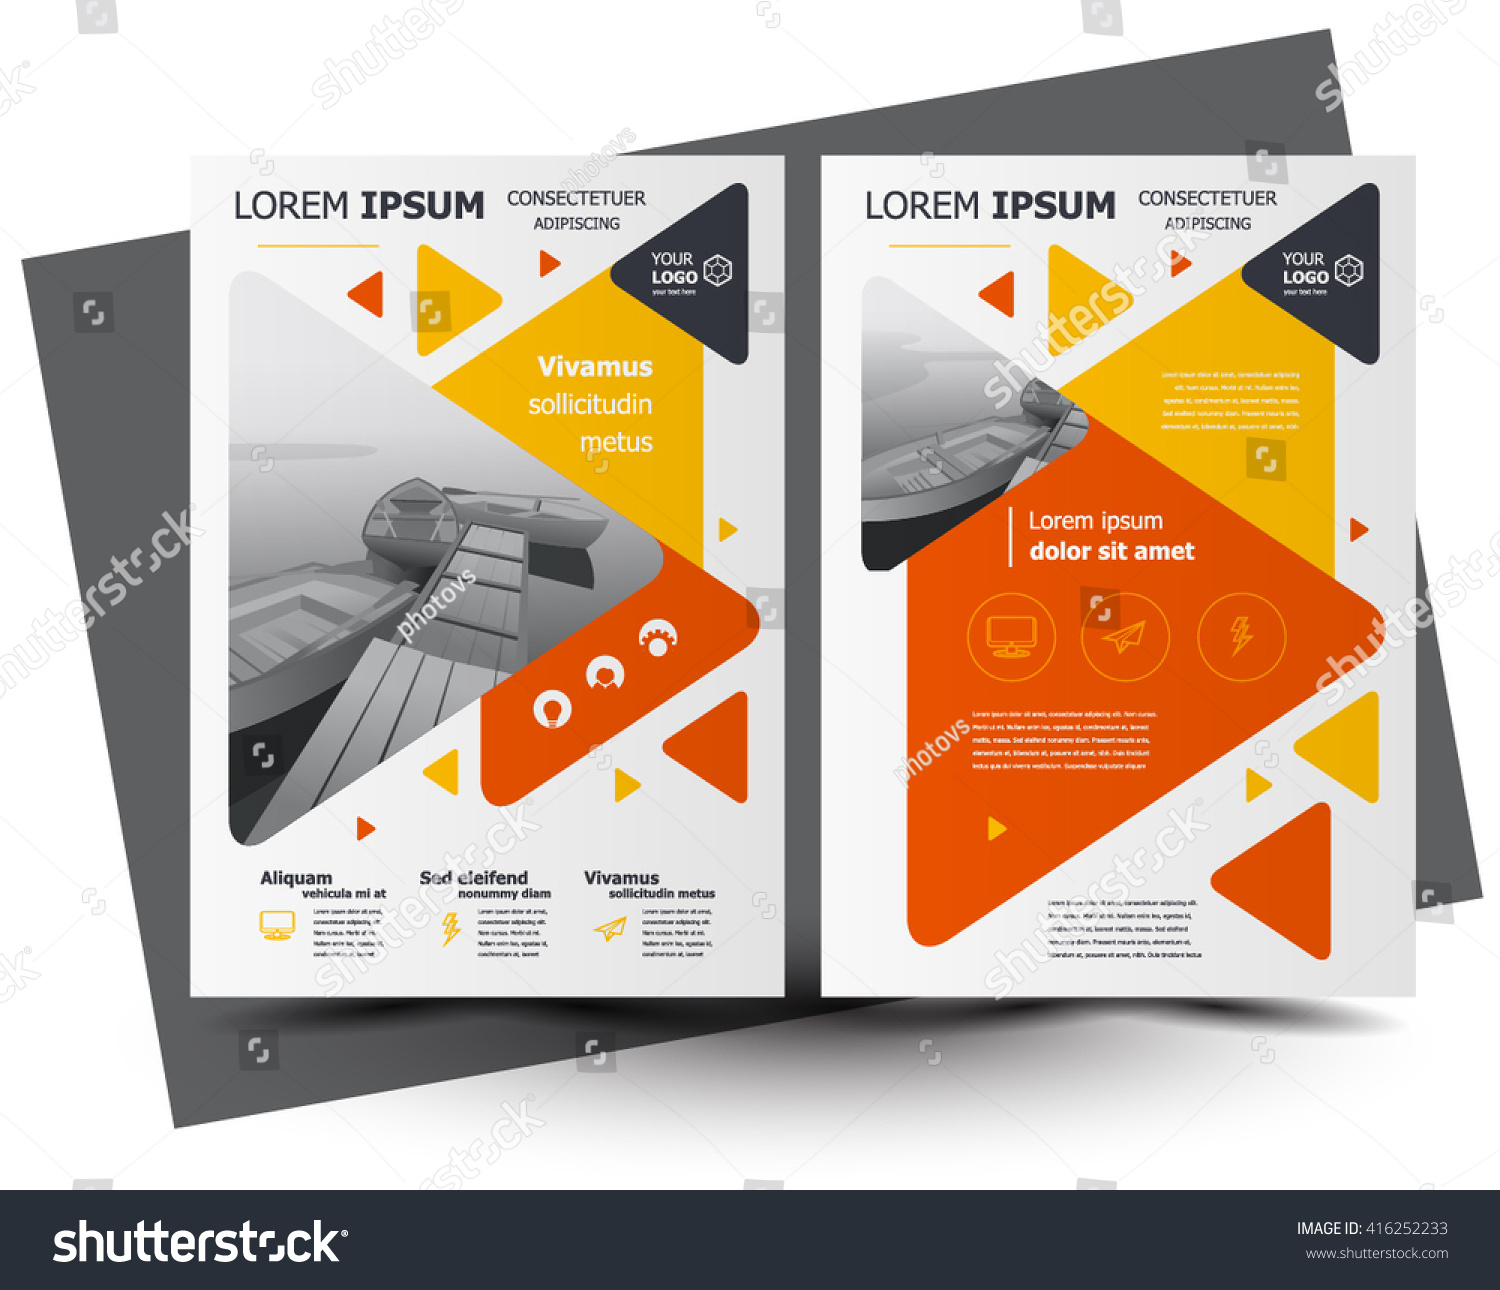 flyer brochure design business flyer size stock vector  flyer brochure design business flyer size a4 template creative leaflet trend cover triangles